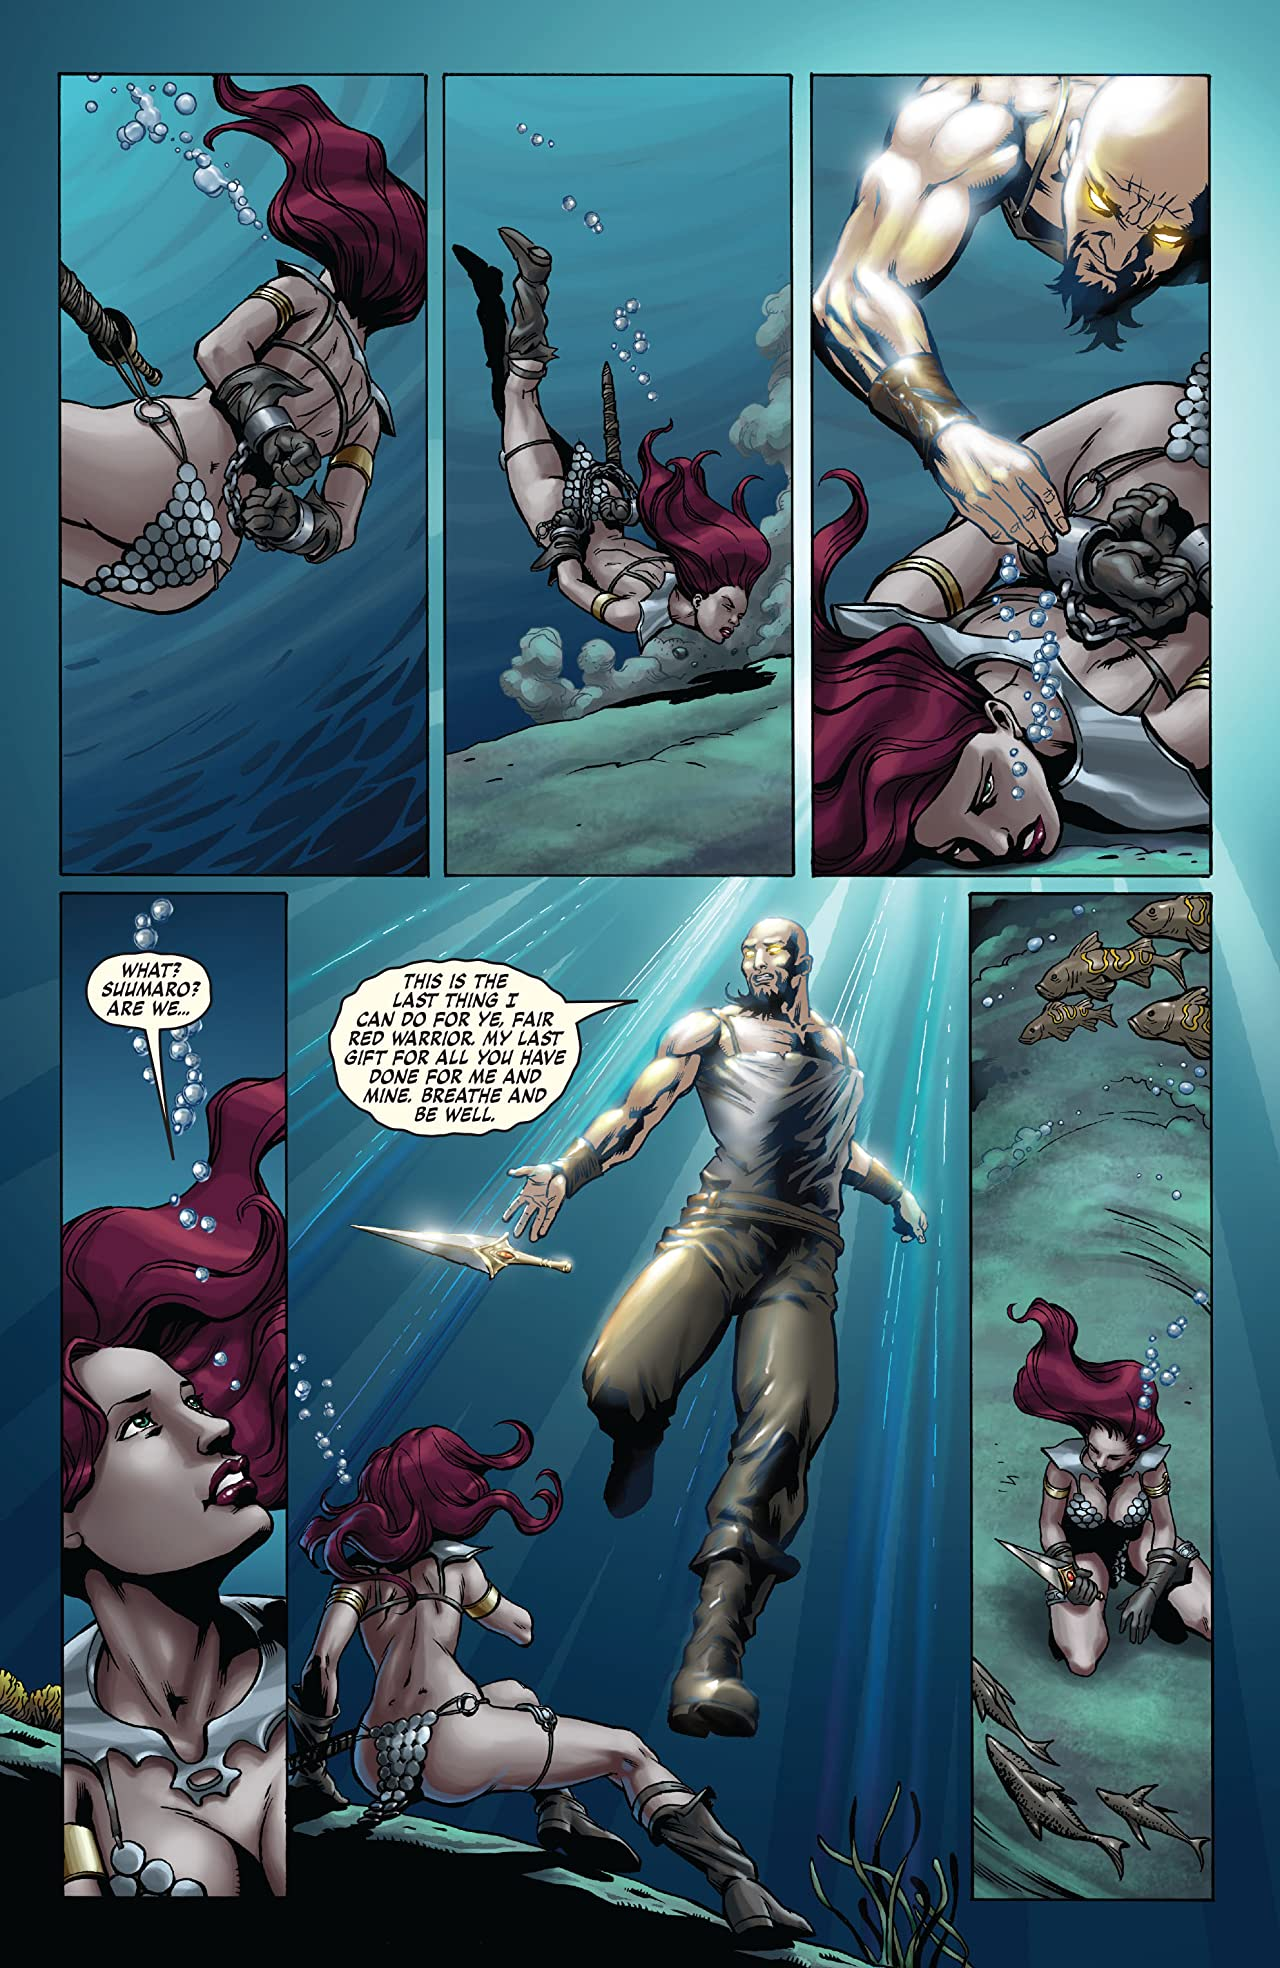 Red Sonja: She-Devil With a Sword #23